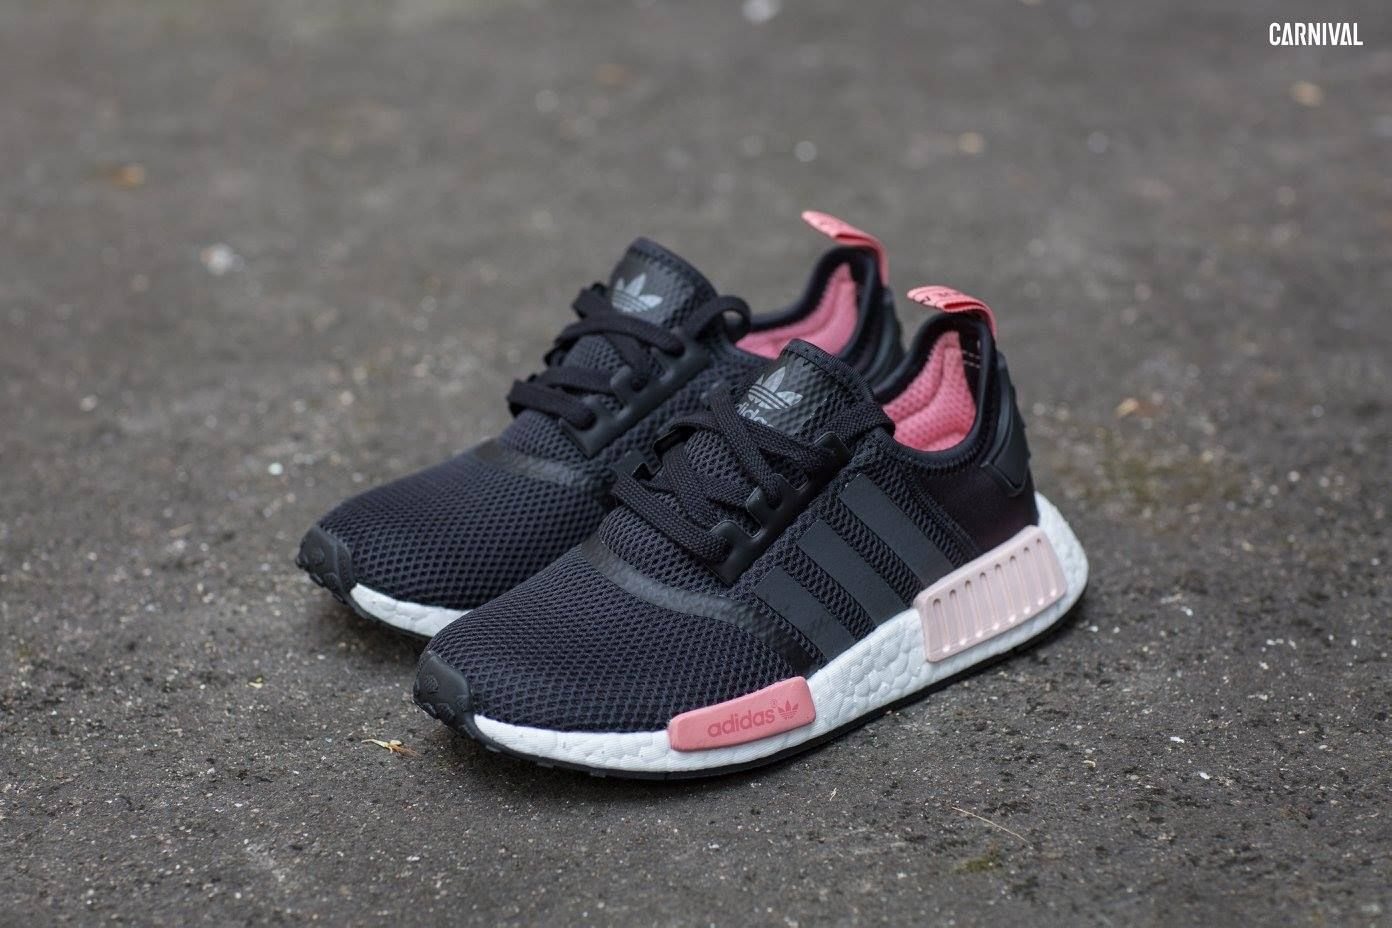 Adidas Originals NMD R1 (Women) City Pack - Black, Pink อีกหนึ่งแพ็